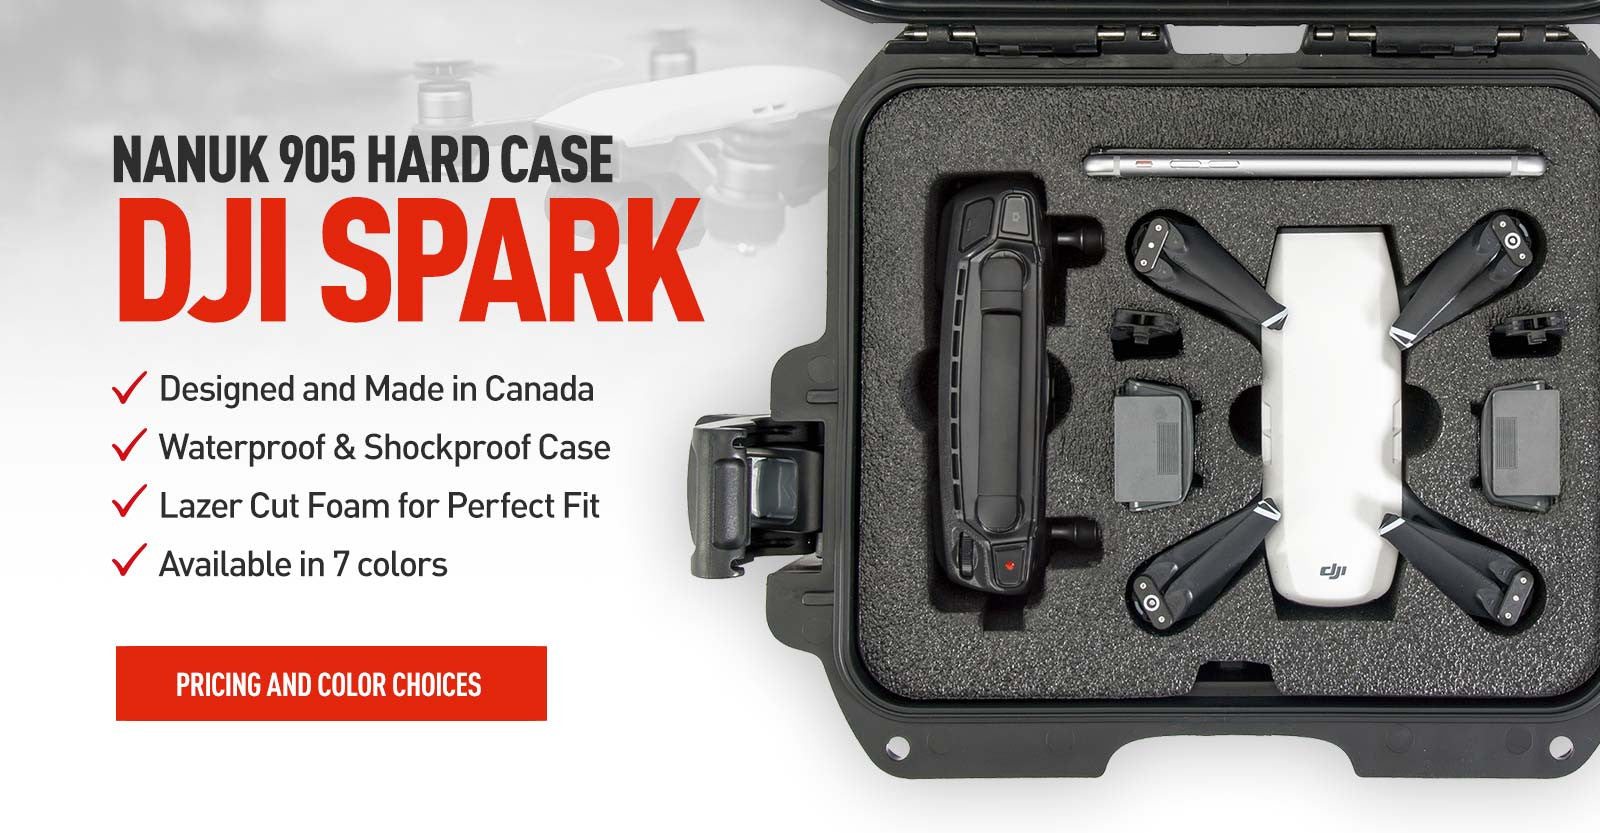 Top view of a Nanuk 905 DJI Spark Hard Case in Graphite